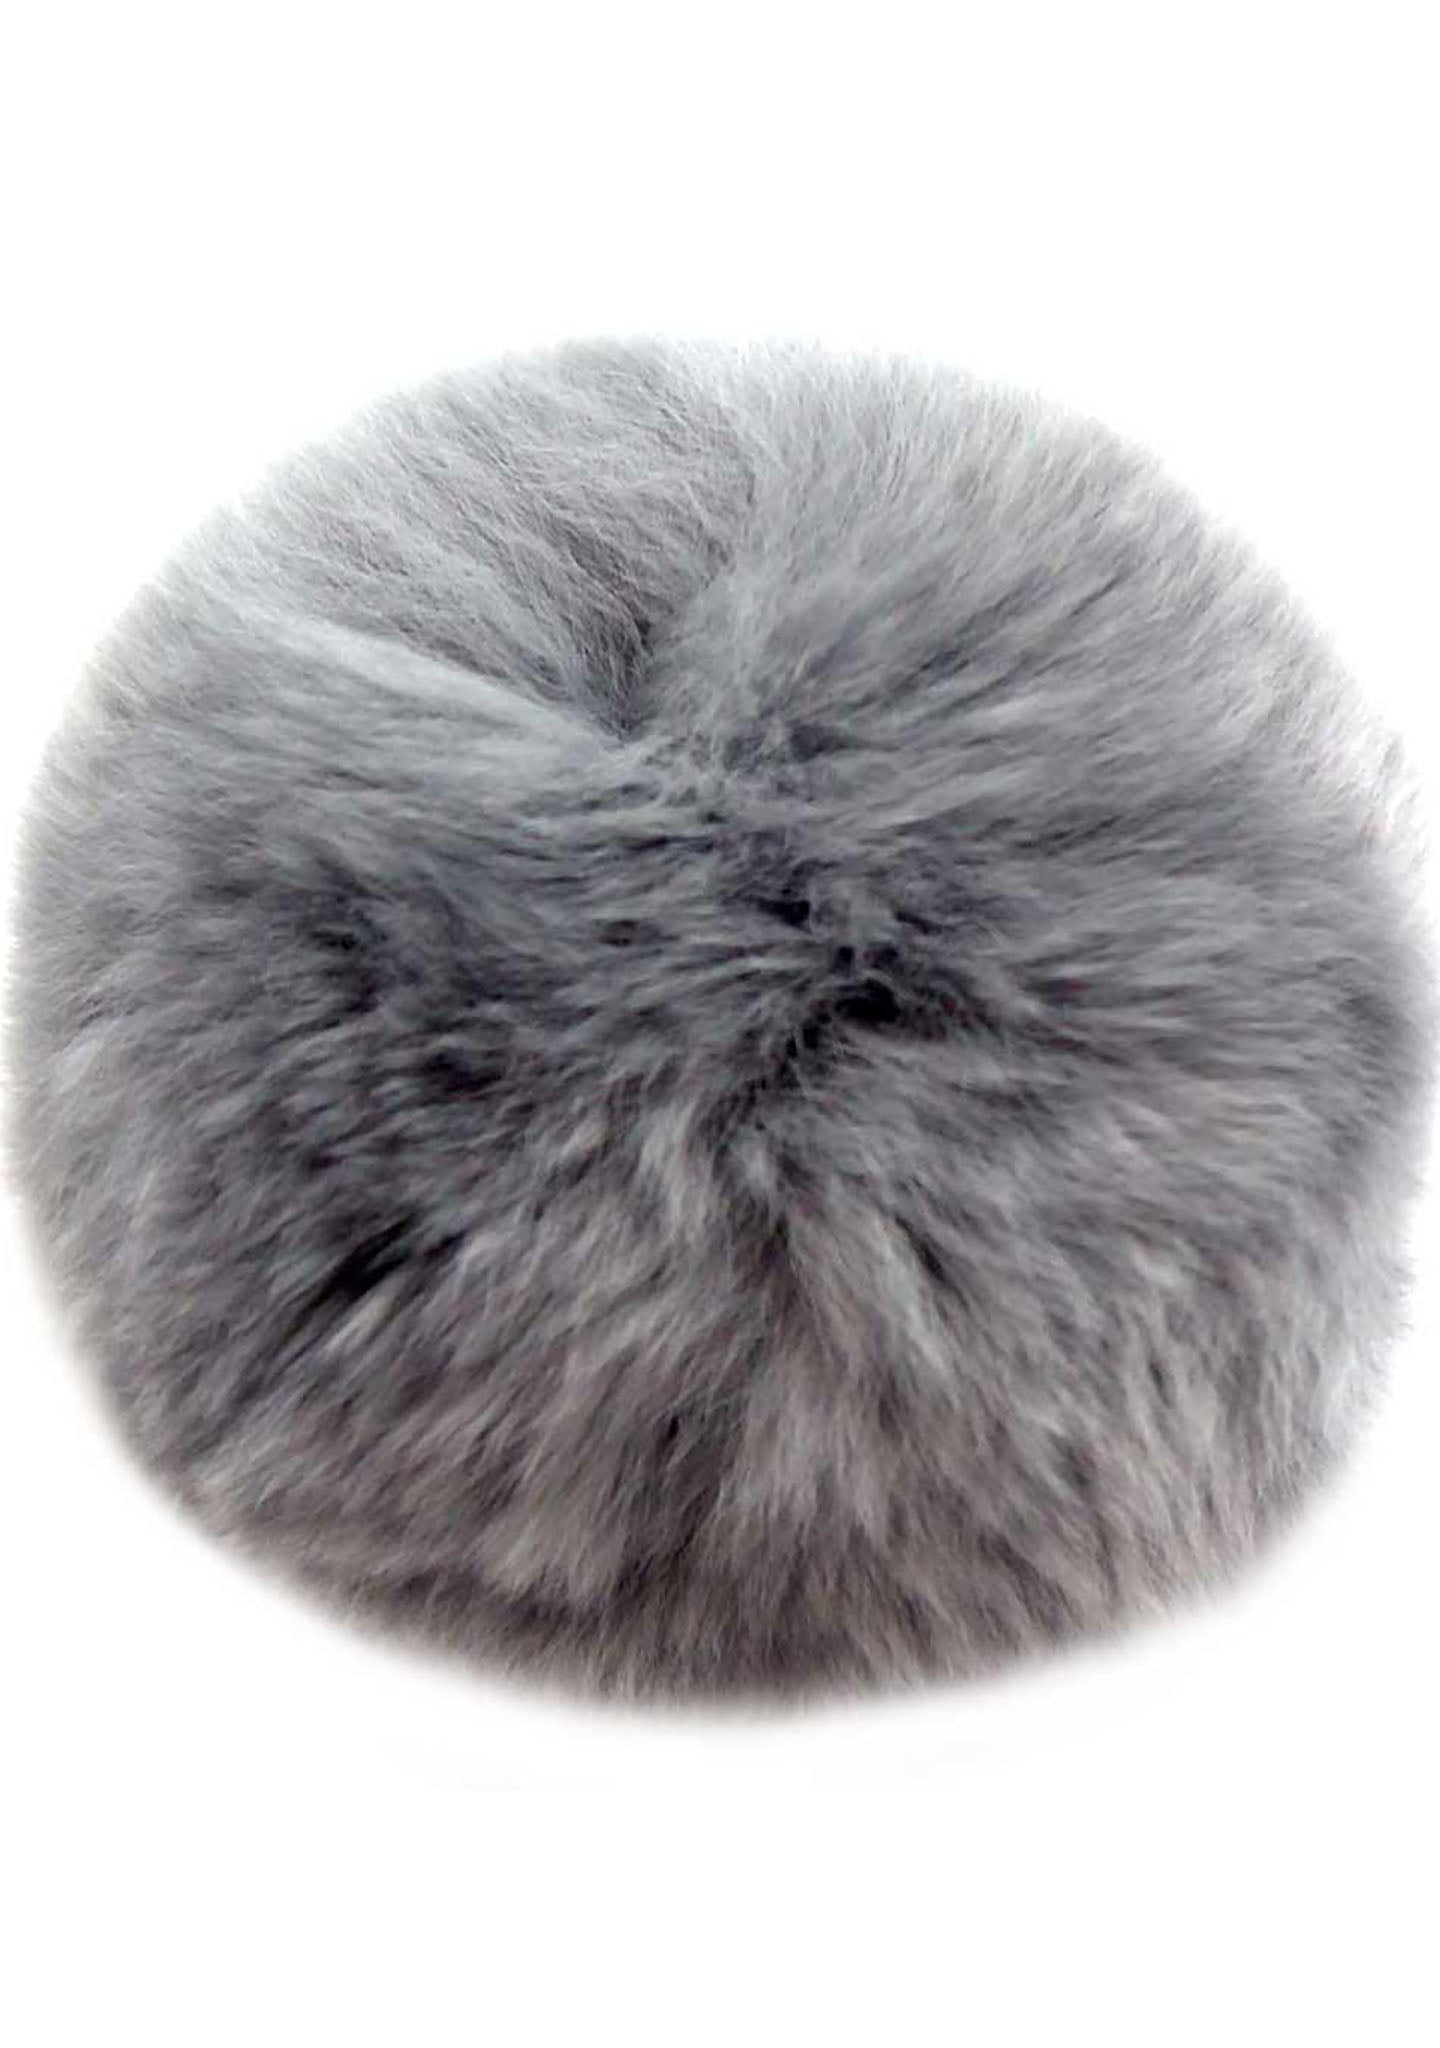 7 LUXE Single Puff Ball Pin Clip